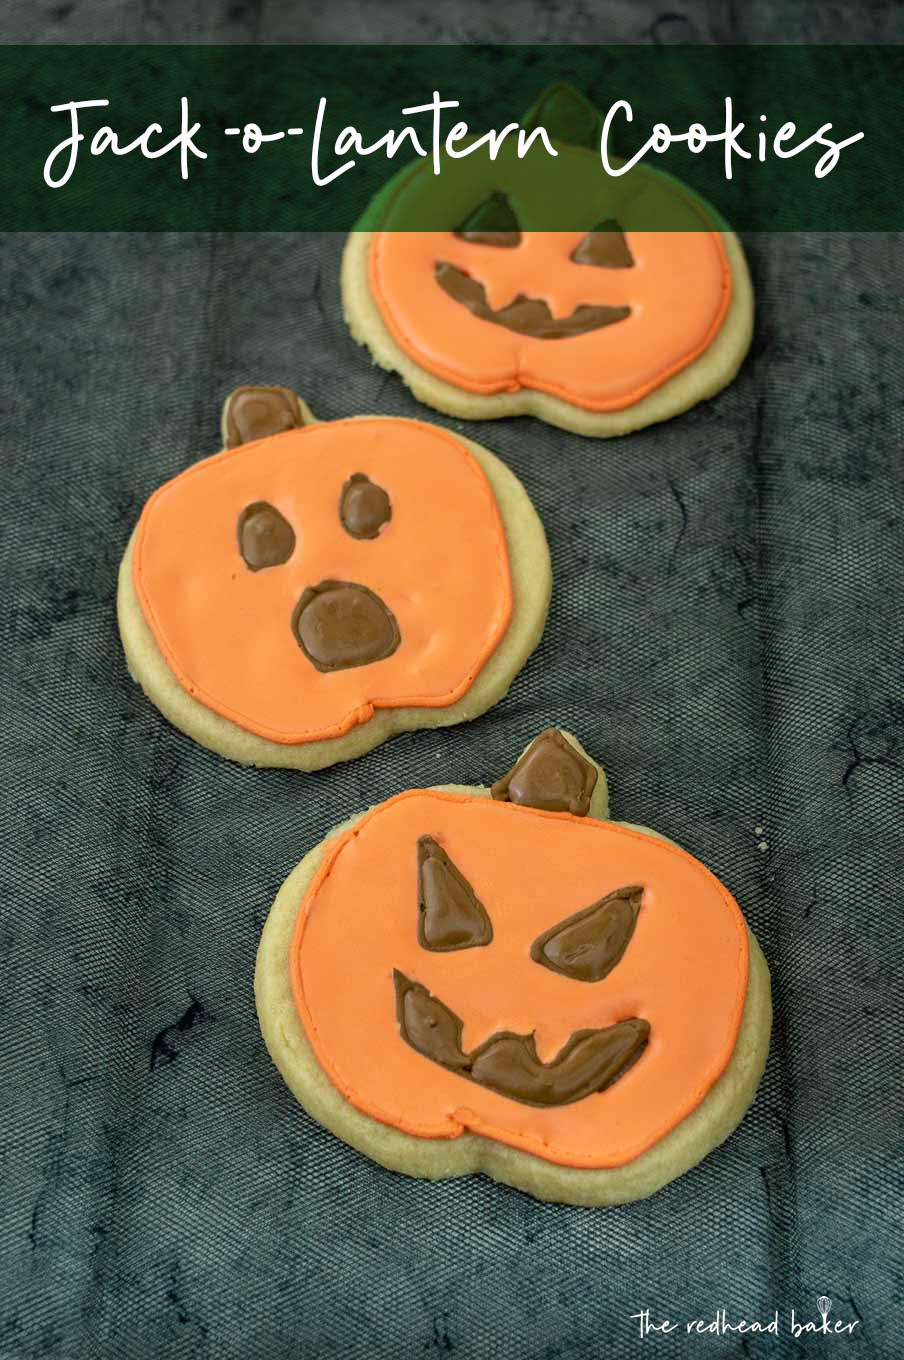 Three jack-o-lantern cookies